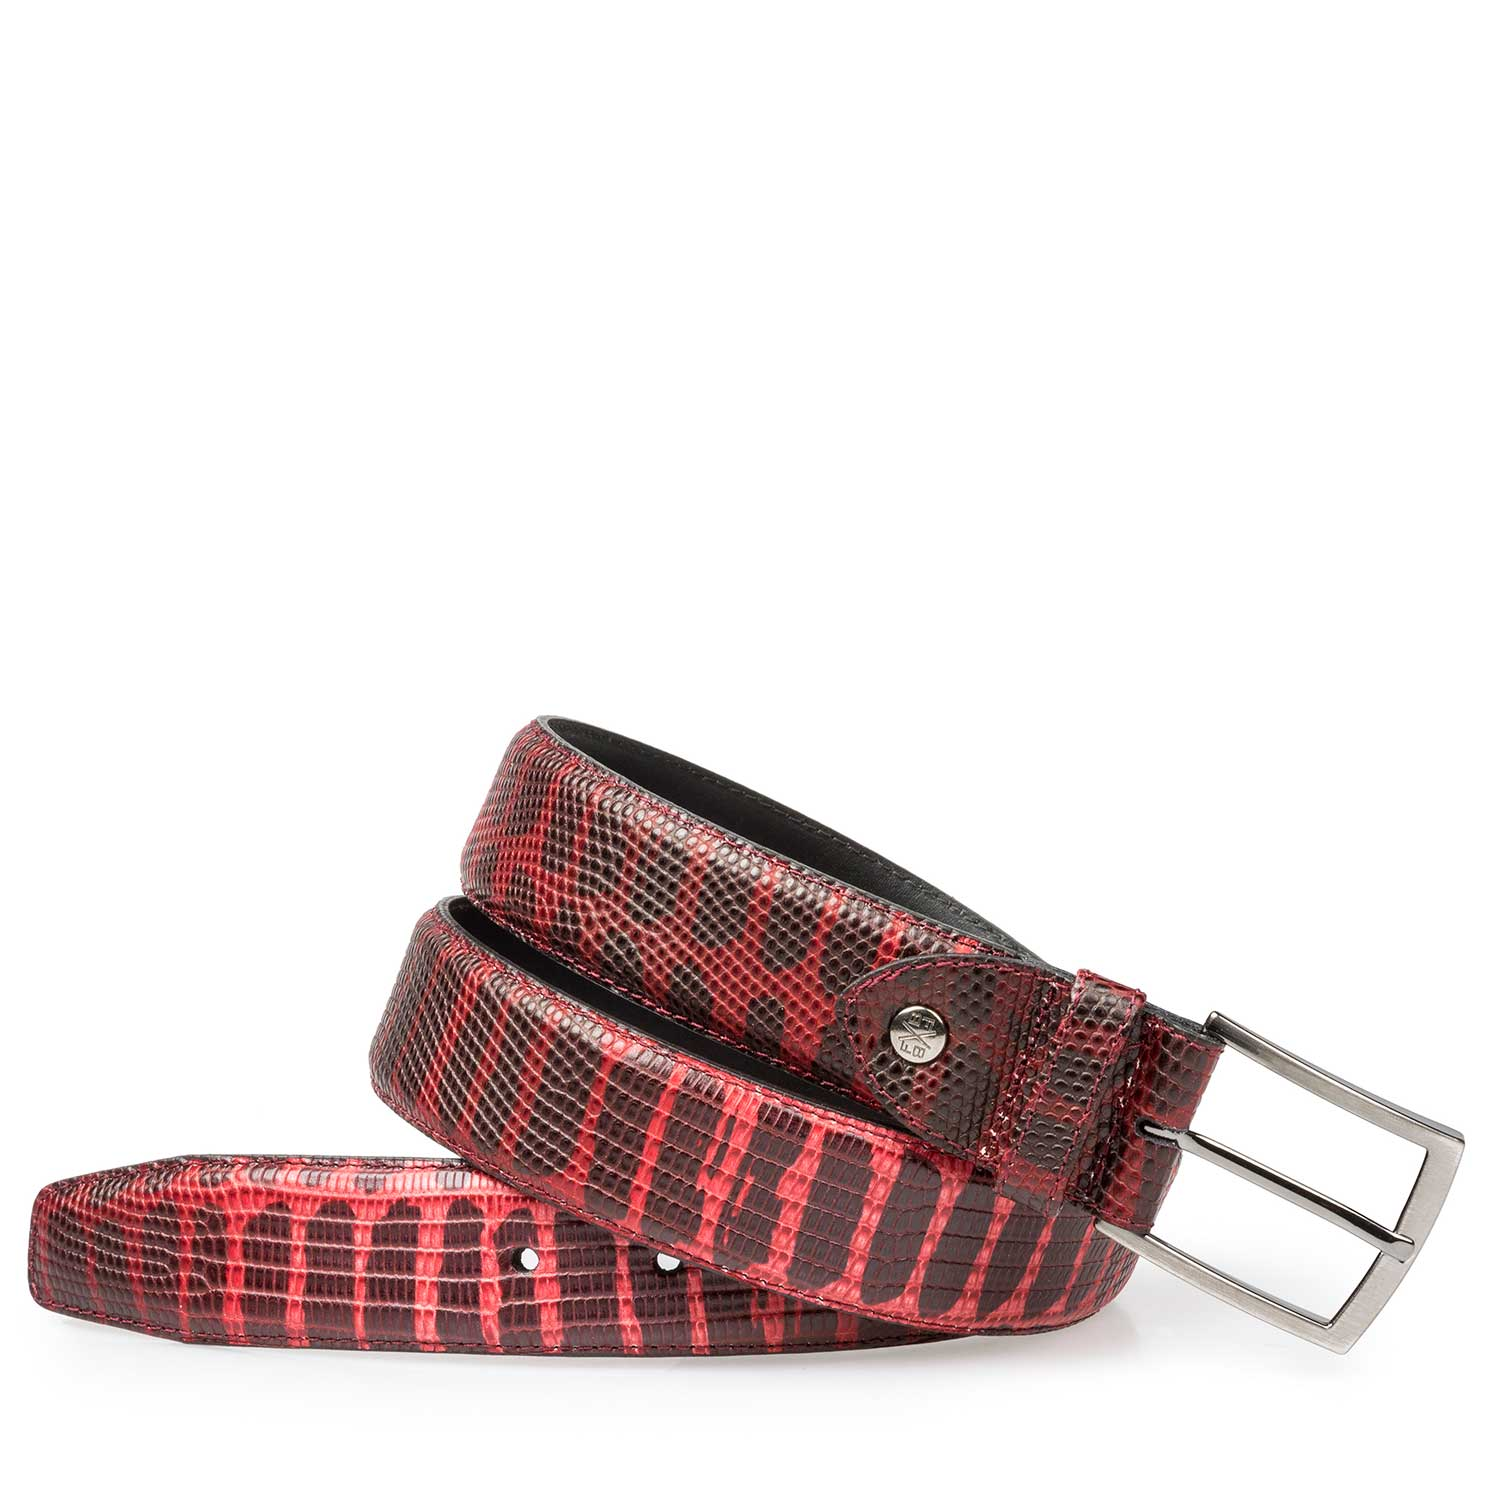 75190/31 - Red calf's leather belt with lizard print